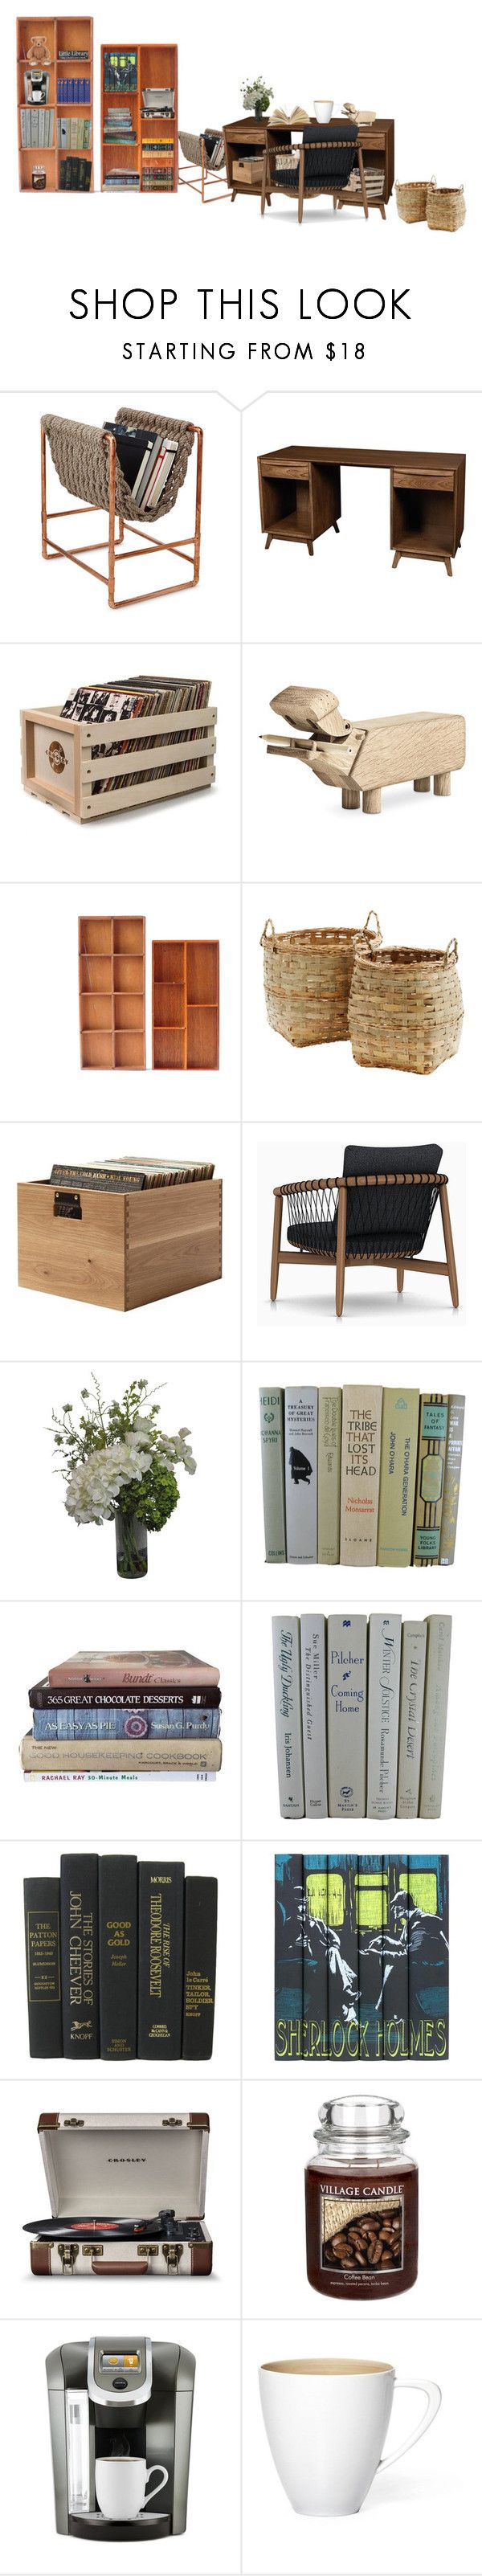 """""""Dream office"""" by spencersnape ❤ liked on Polyvore featuring DutchCrafters, Crosley Radio & Furniture, Kay Bojesen, Abigail Ahern, Canterbury, Crosley, Village Candle and Keurig"""